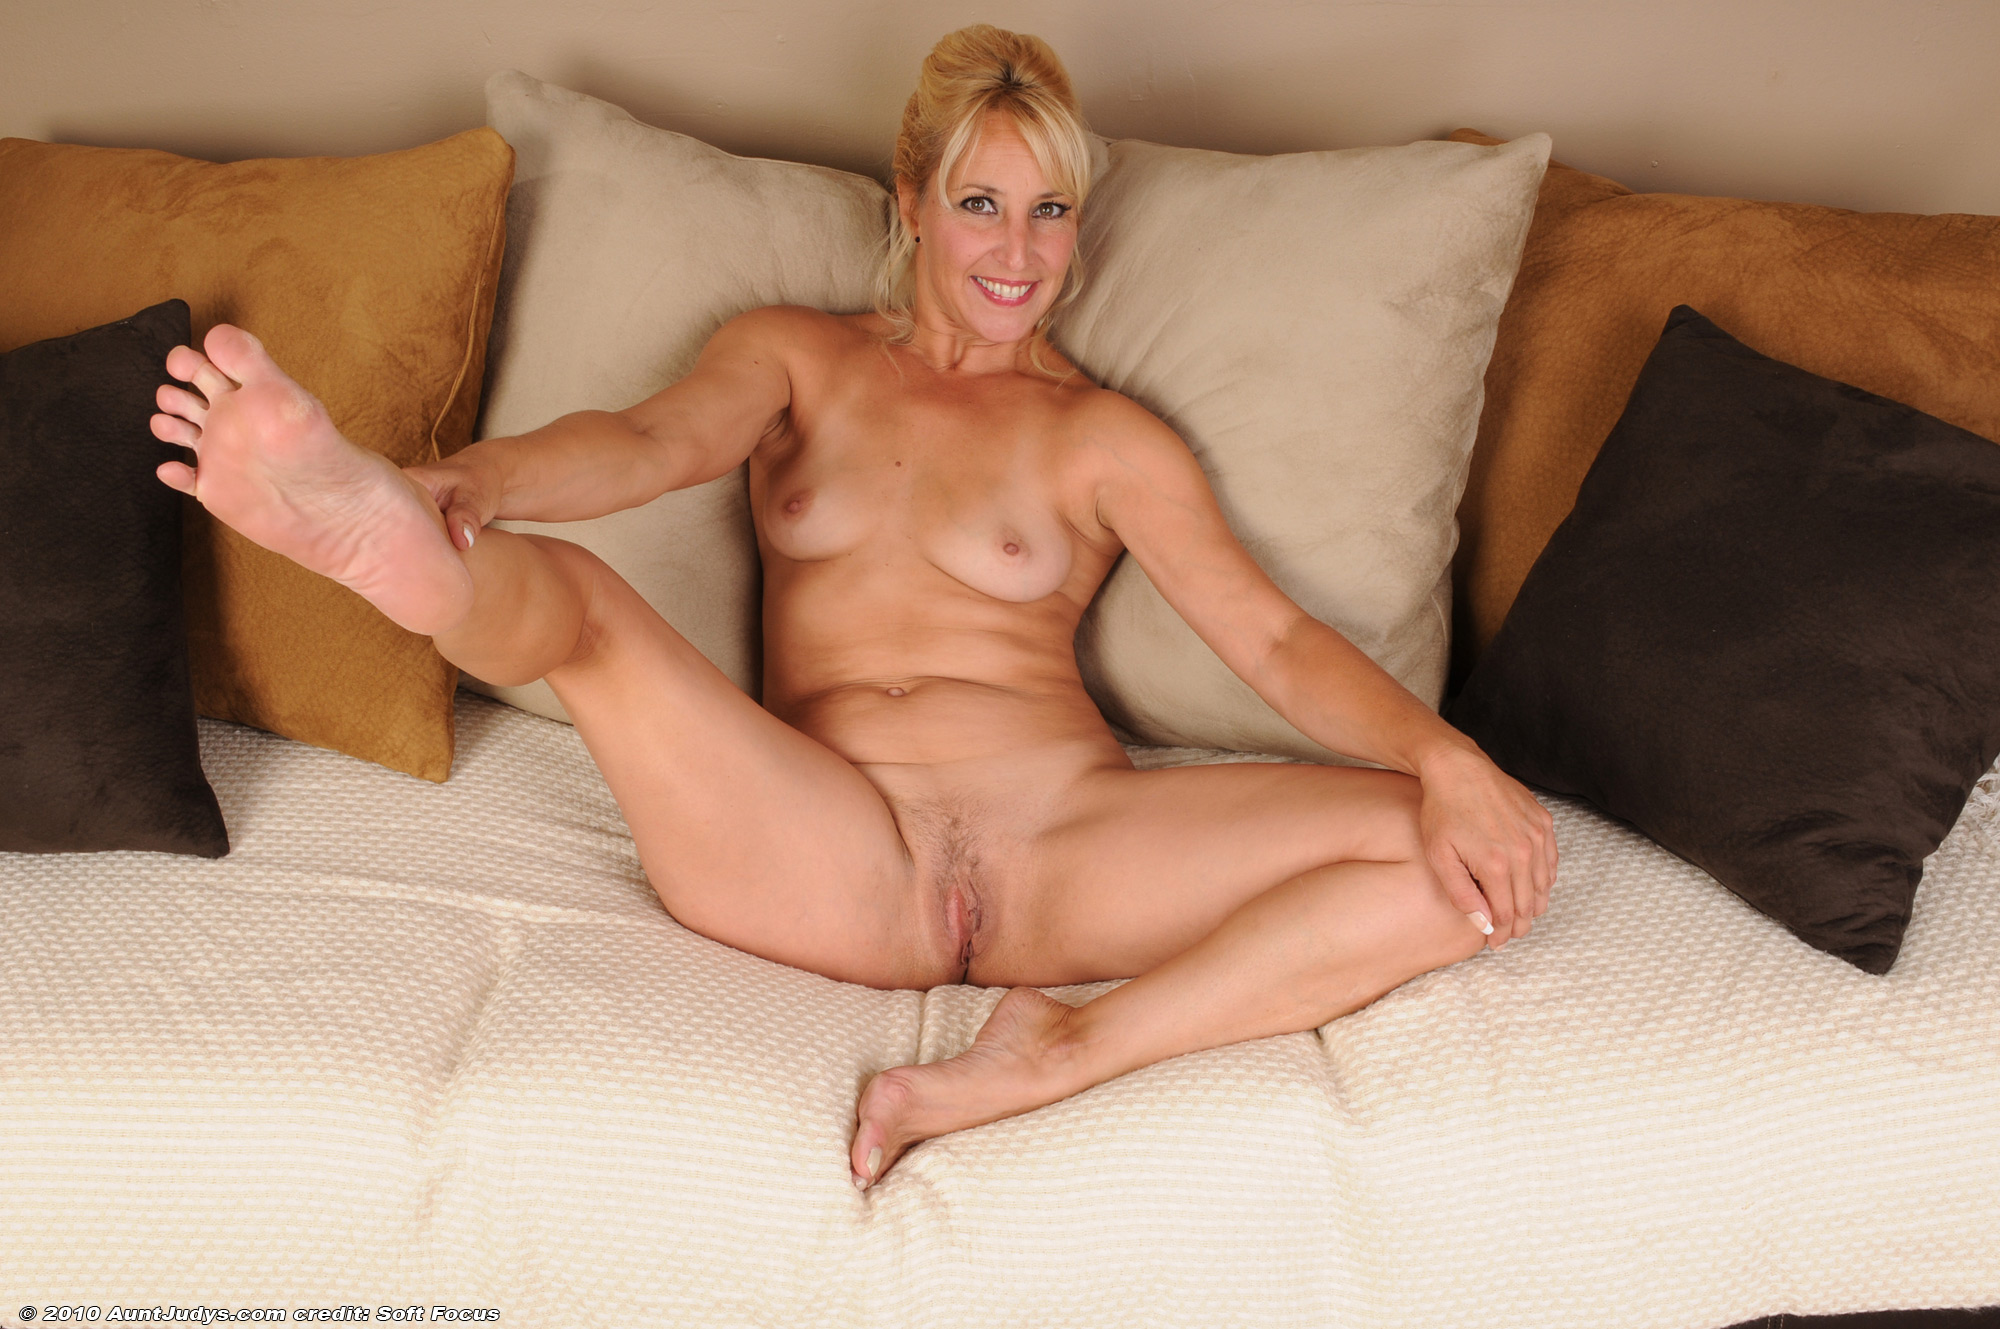 BBW, favorite. shaved mature models nice